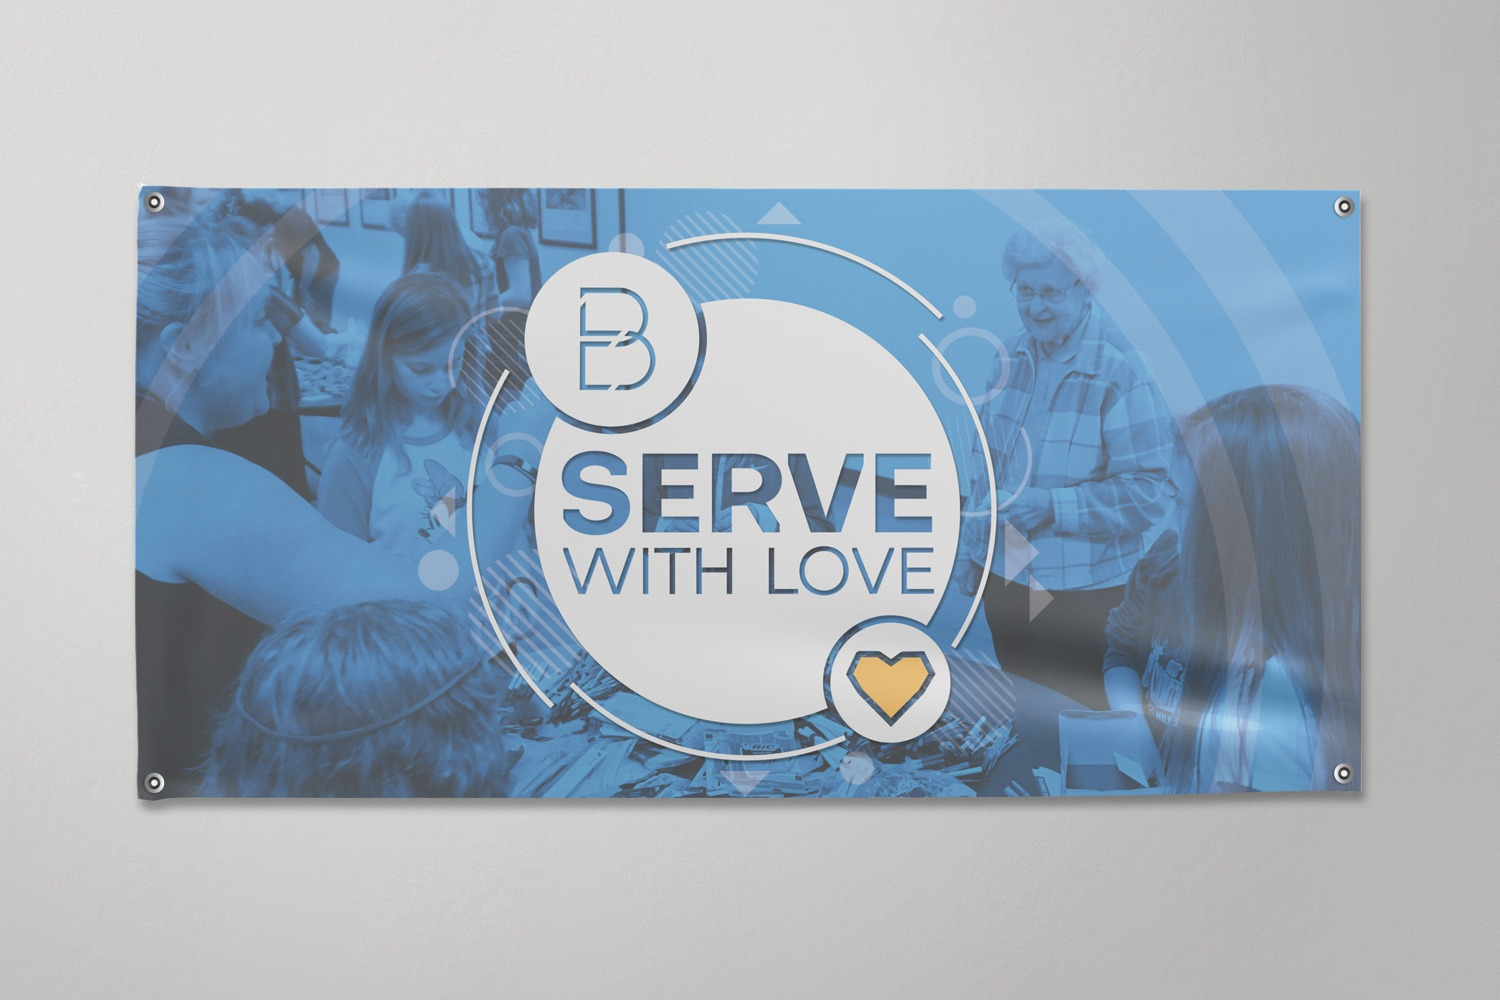 Church Vinyl Banner: Full color - 1 sided, 2 x 4 ft. for outreach and marketing communications